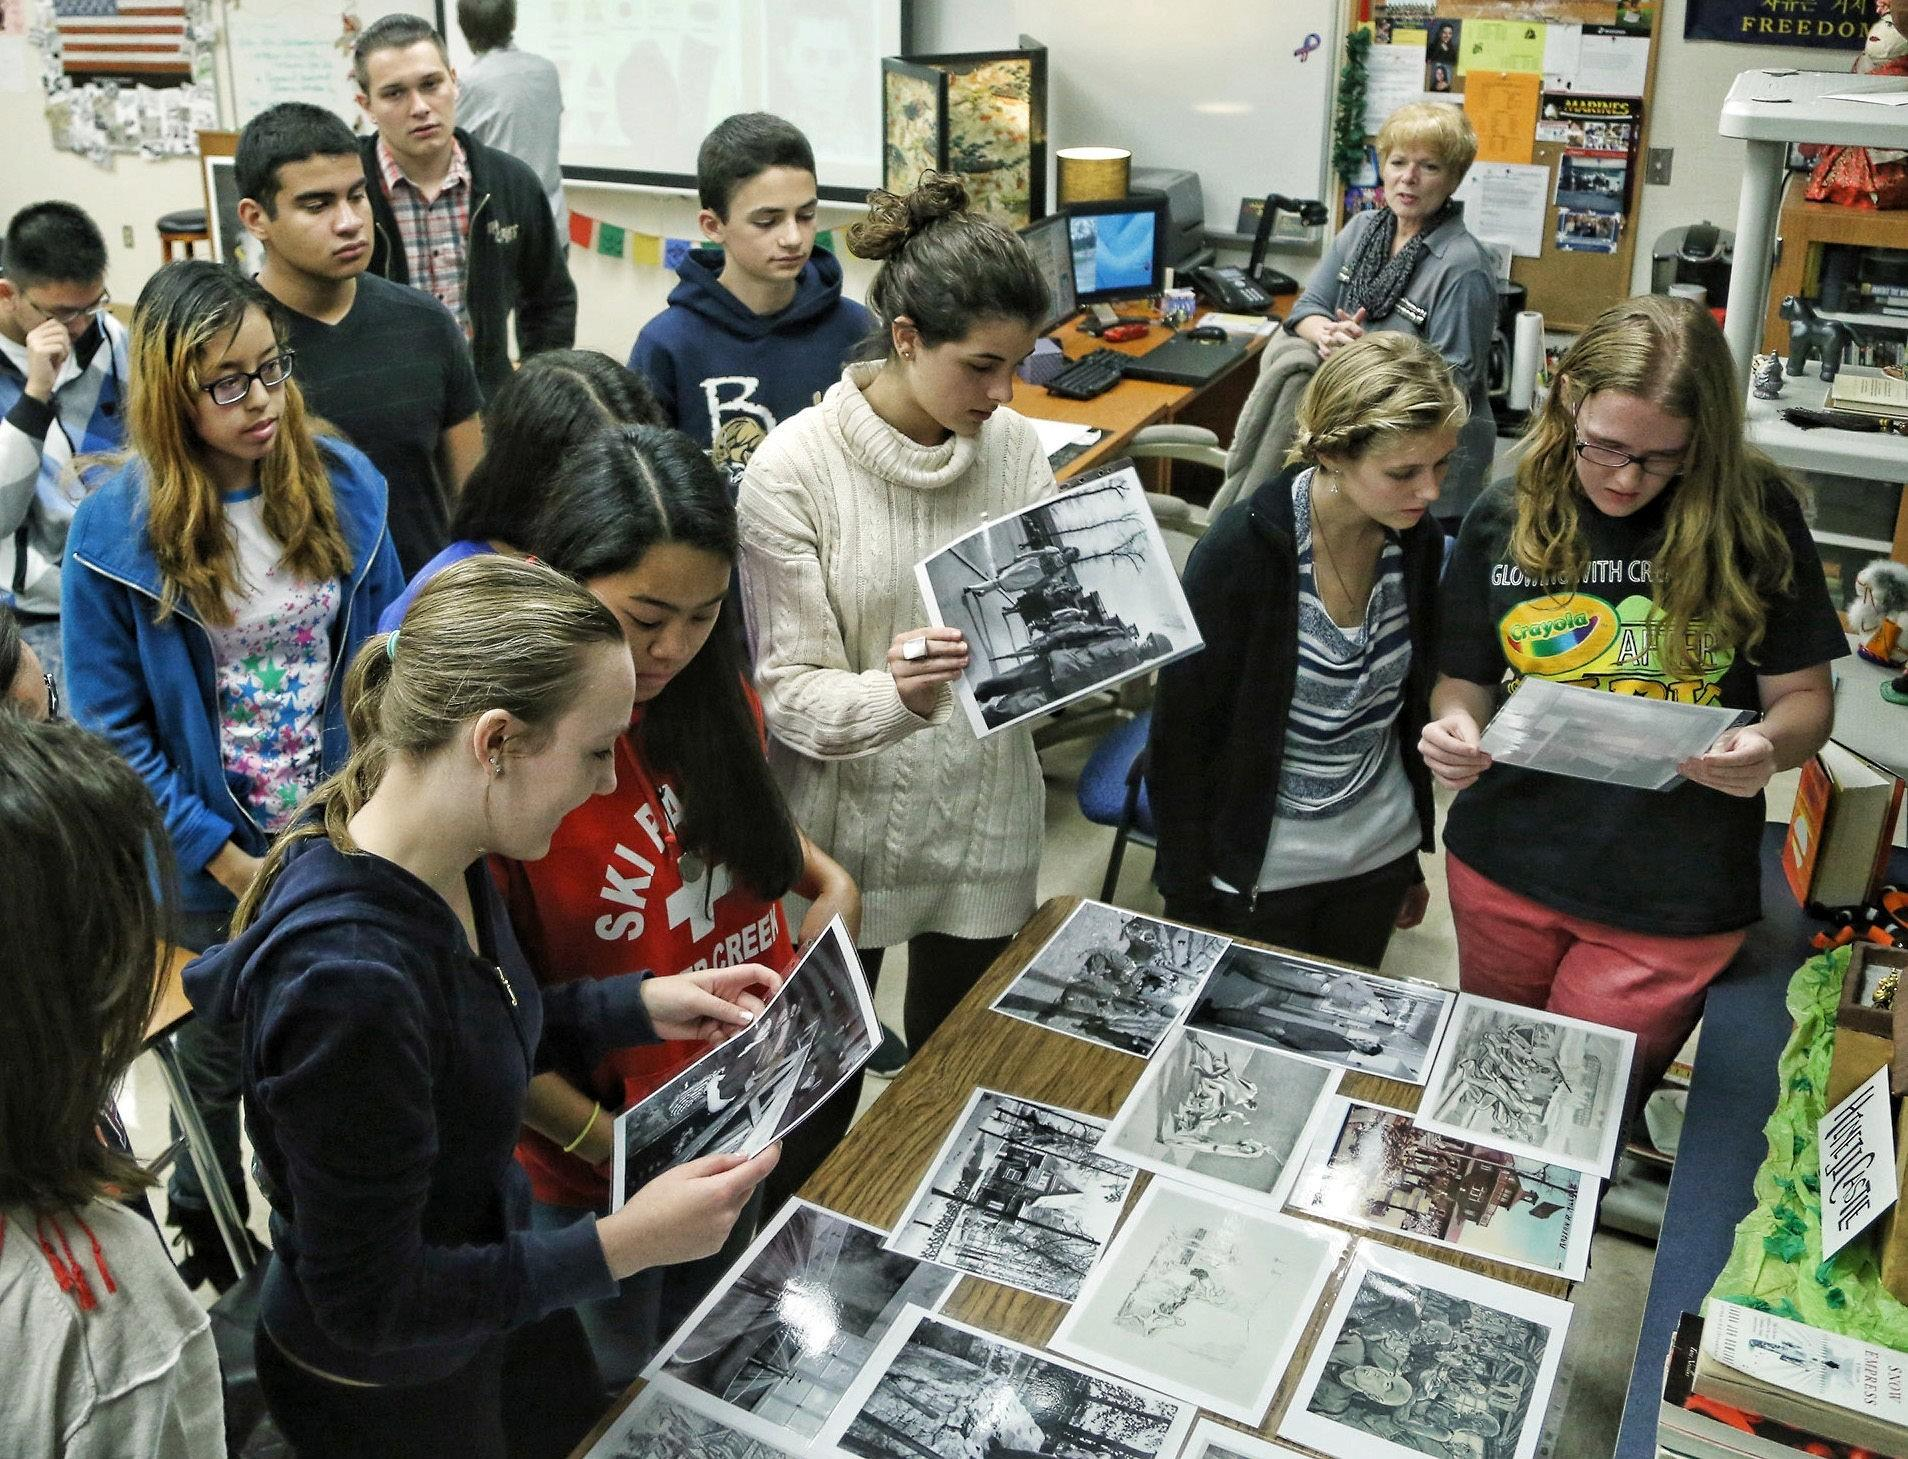 West Boca High students look at photographs of Holocaust victims who were imprisoned at the Buchenwald concentration camp in Germany. Visiting historian Jan Malecha who is a guide at the Buchenwald memorial will be visiting Palm Beach & Broward high schools over the next few months educating students about the death camp's history.